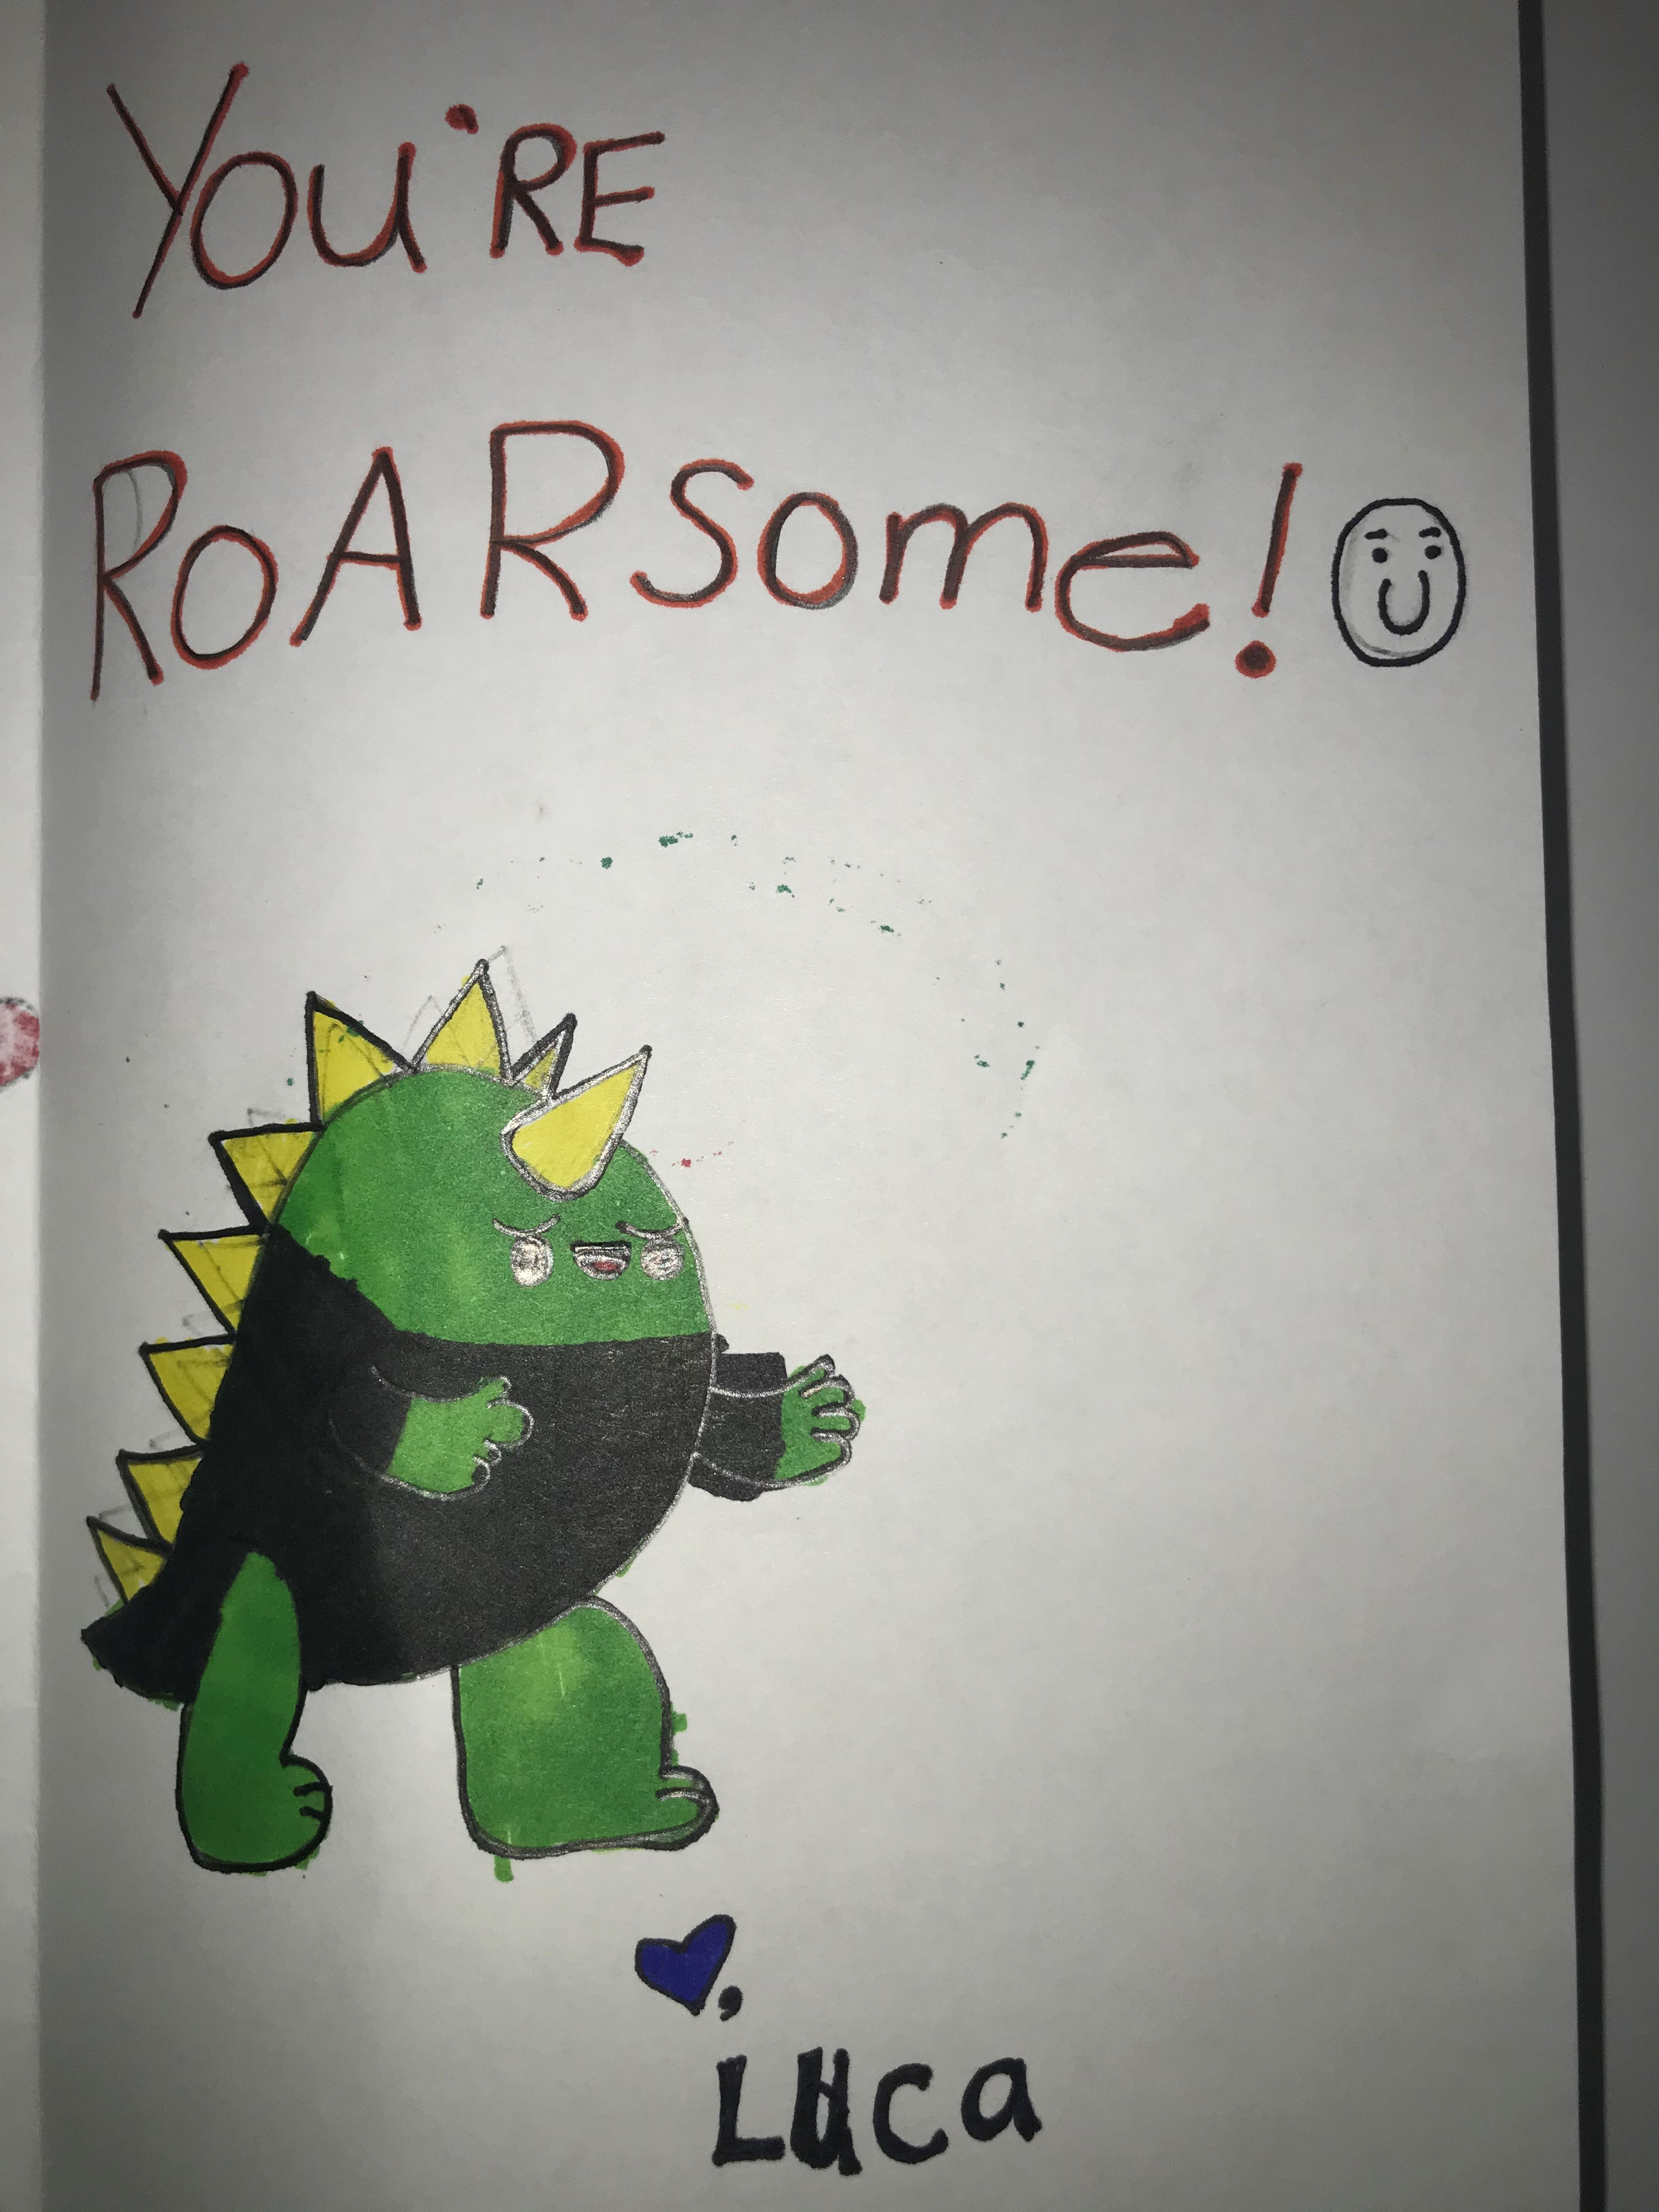 You're roarsome!